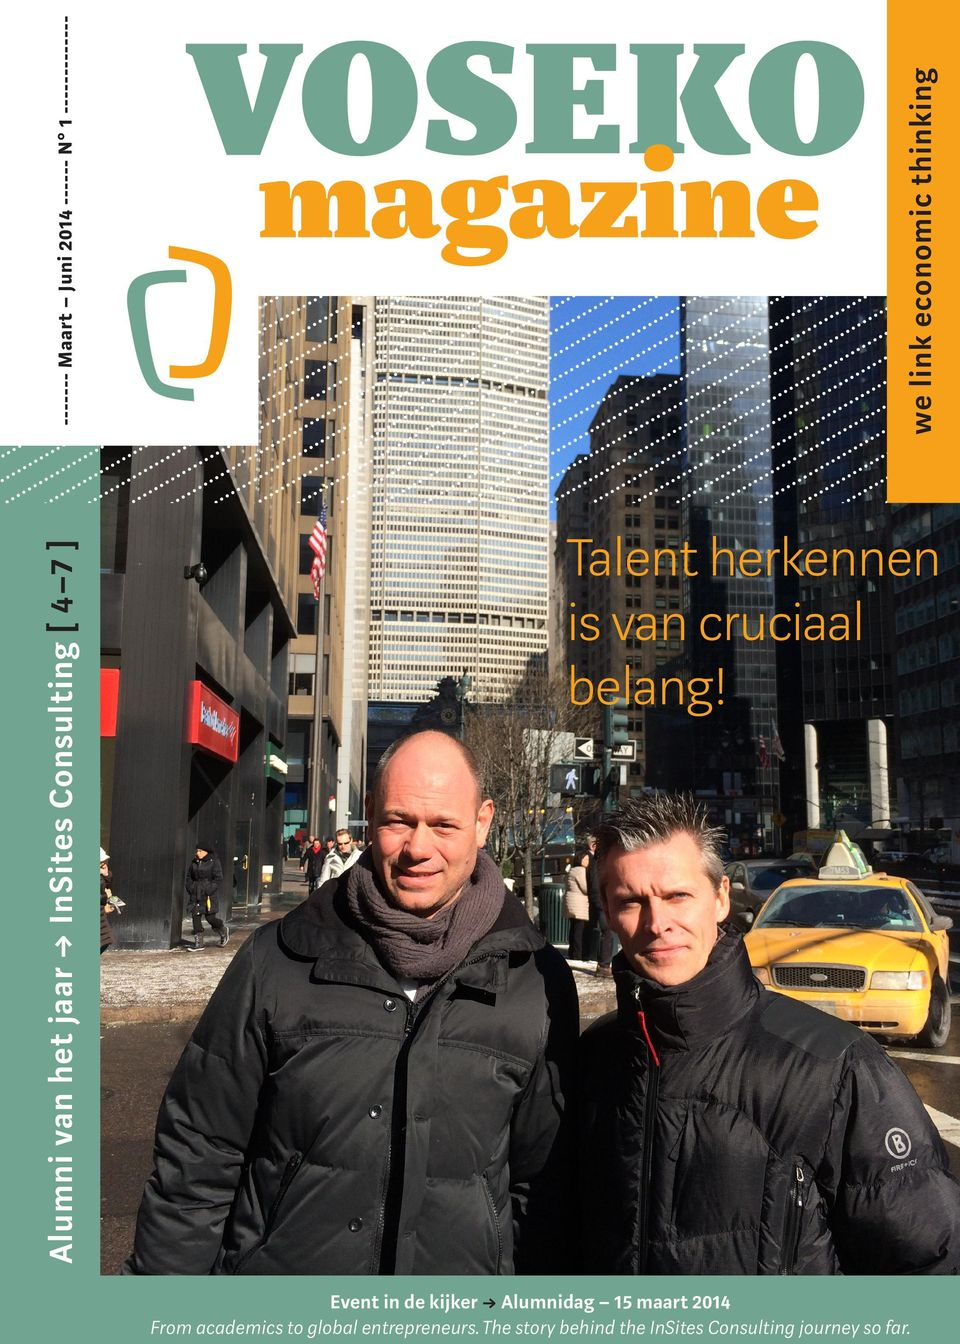 VOSEKO magazine Talent herkennen is van cruciaal belang!